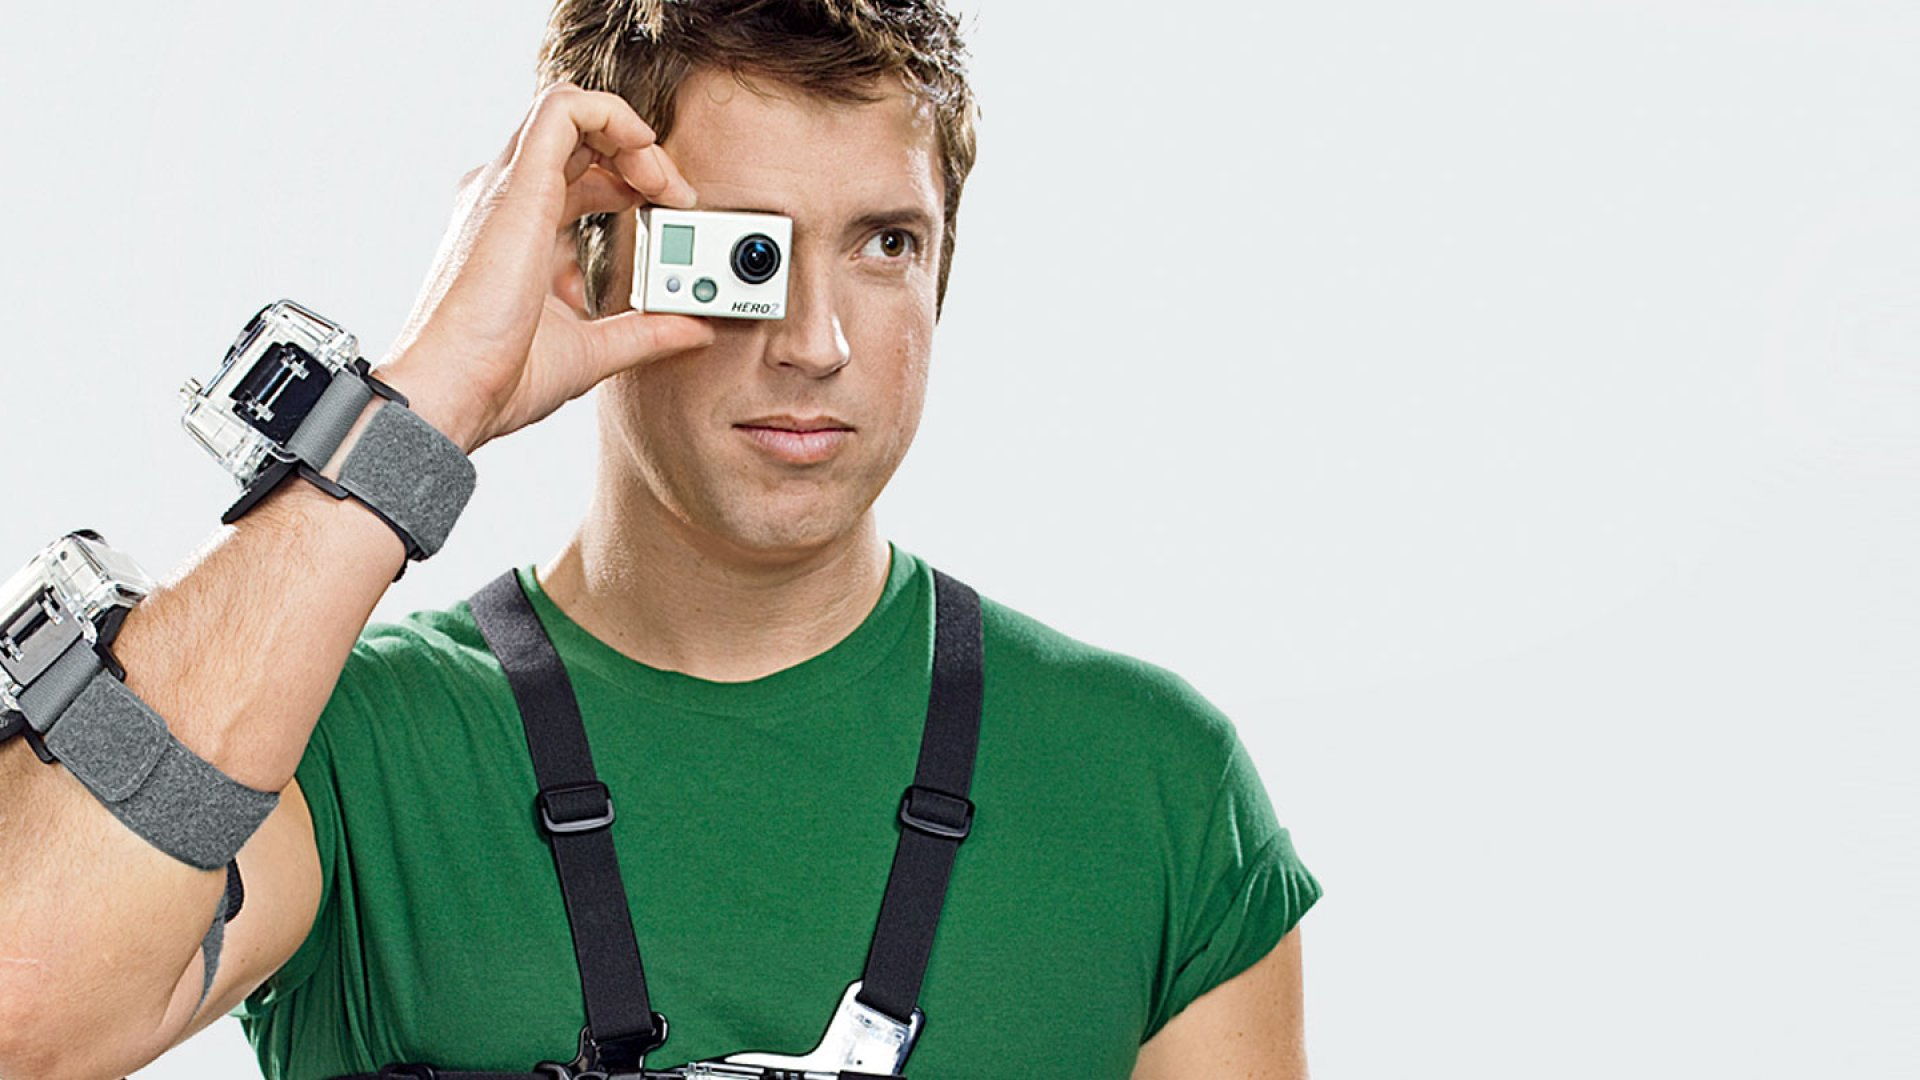 How Your Action Footage Could Help GoPro Pull a 180